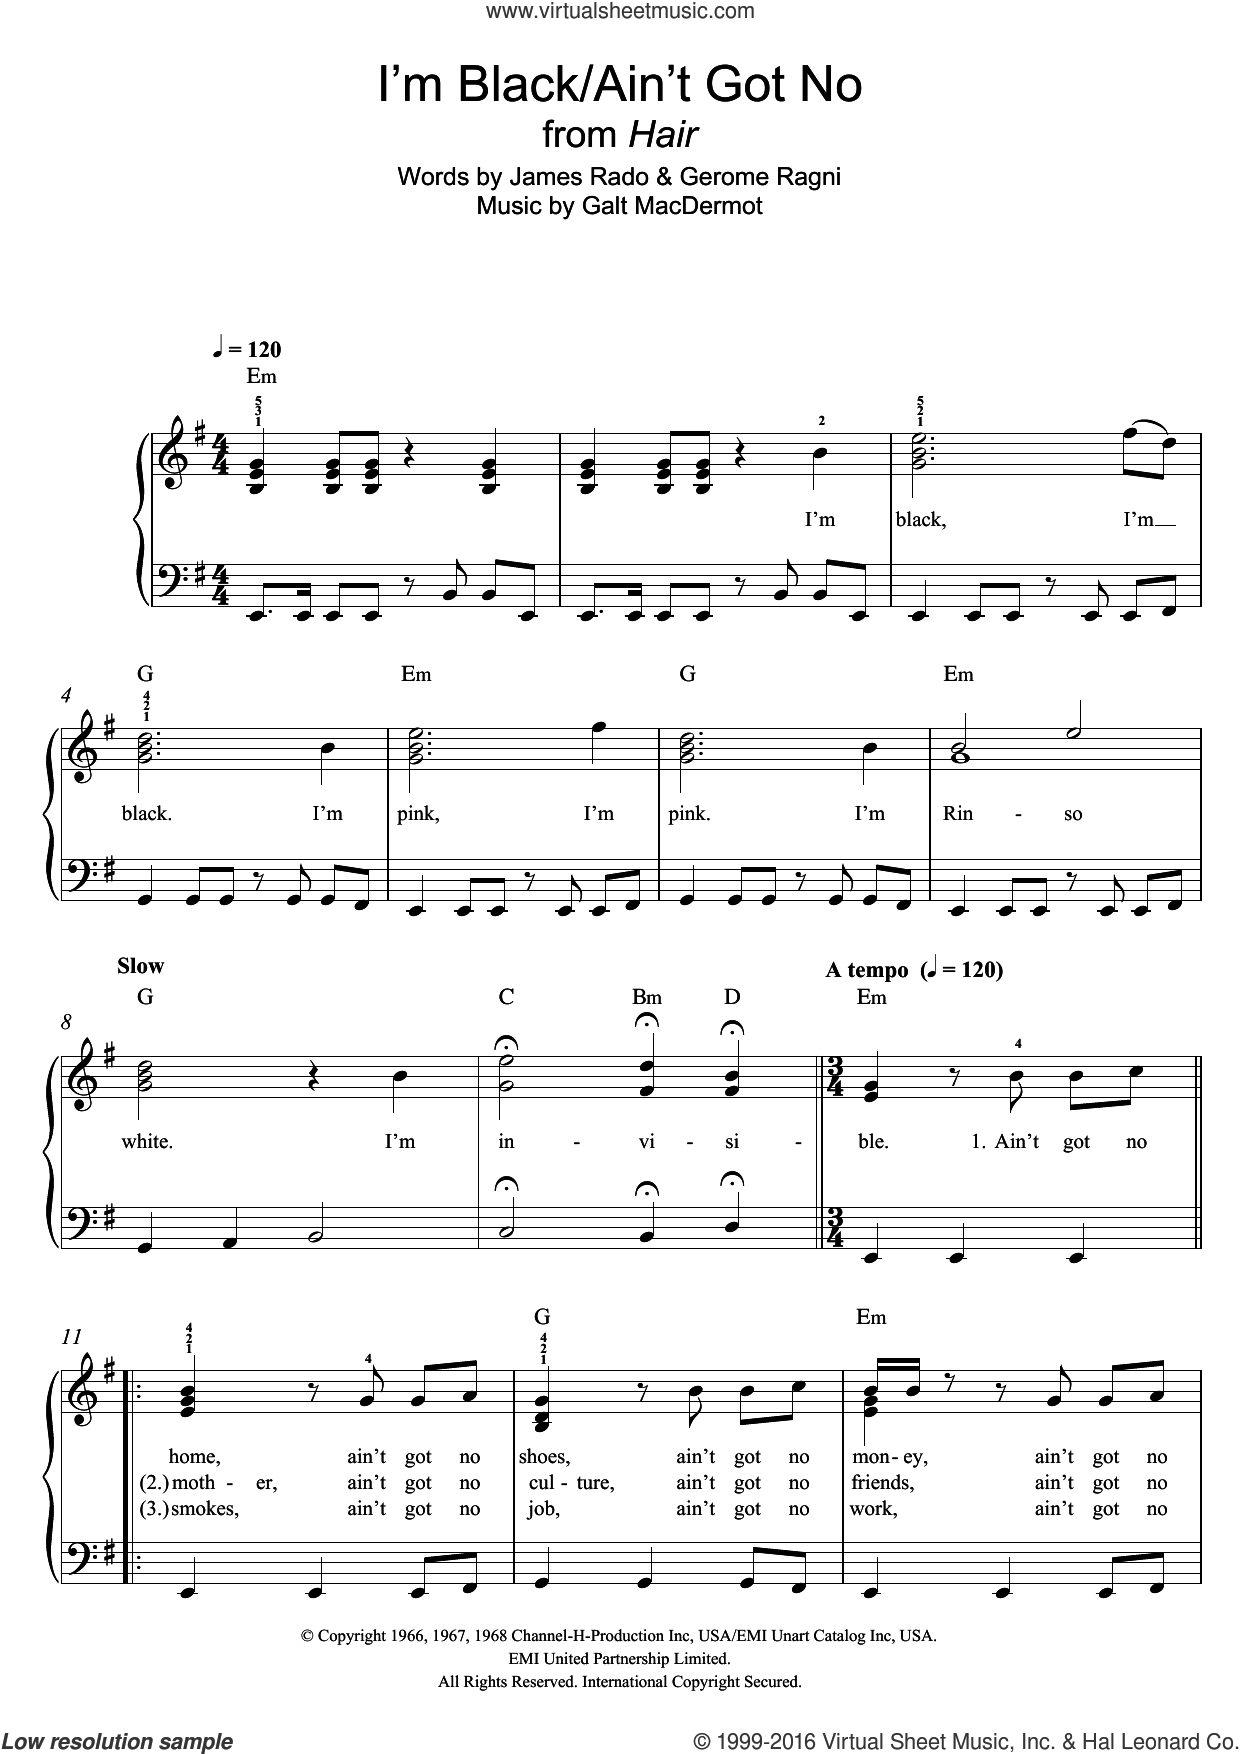 I'm Black/Ain't Got No (from 'Hair') sheet music for piano solo by Galt MacDermot, Gerome Ragni and James Rado, easy skill level